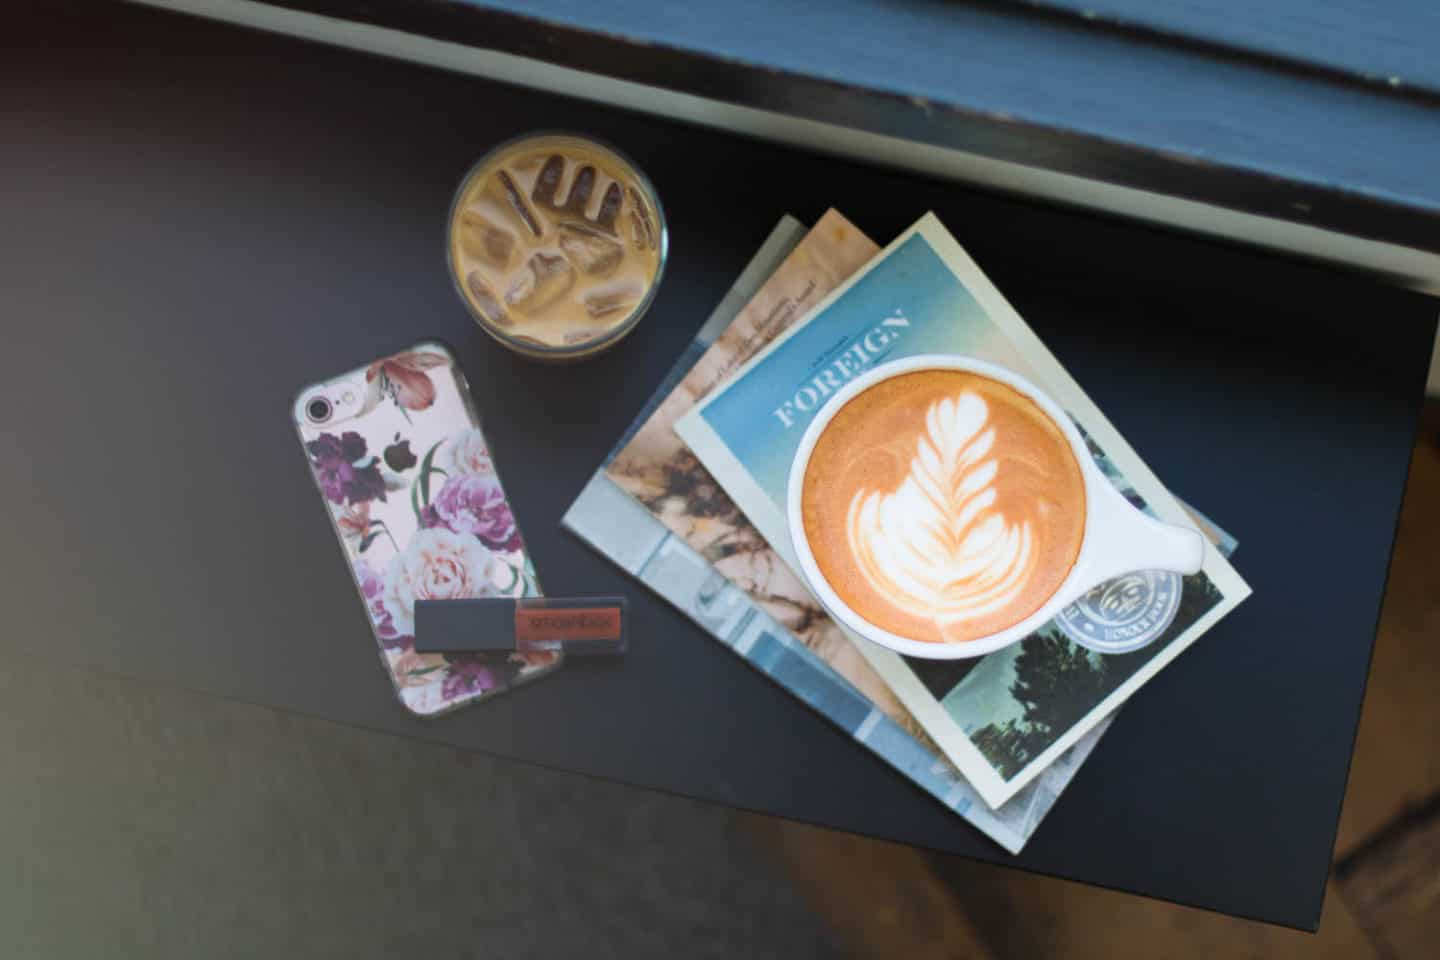 Bean Around the World serves great coffee in Vancouver.